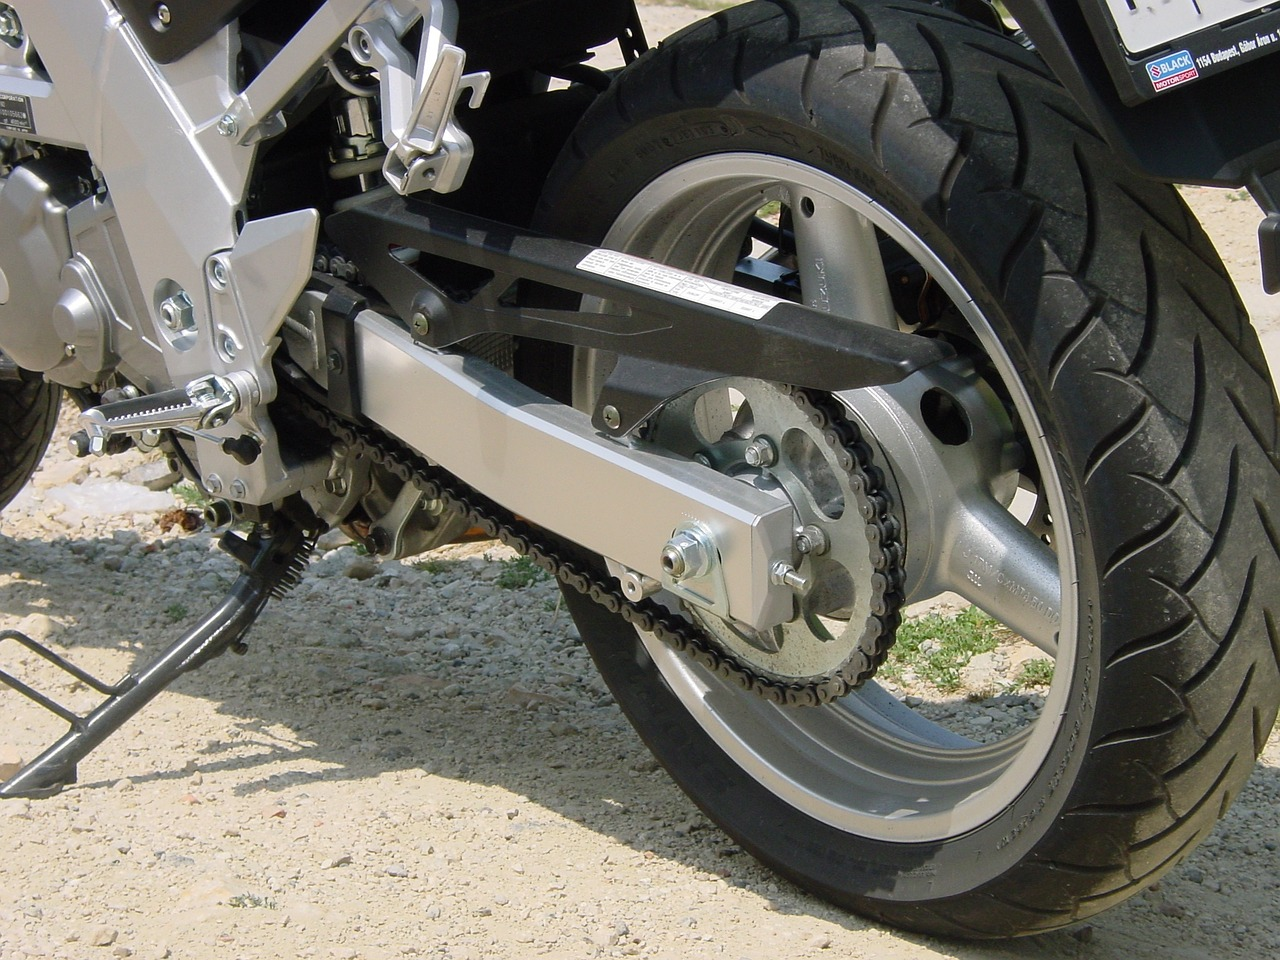 Motorcycle tire pressure tips all riders should know